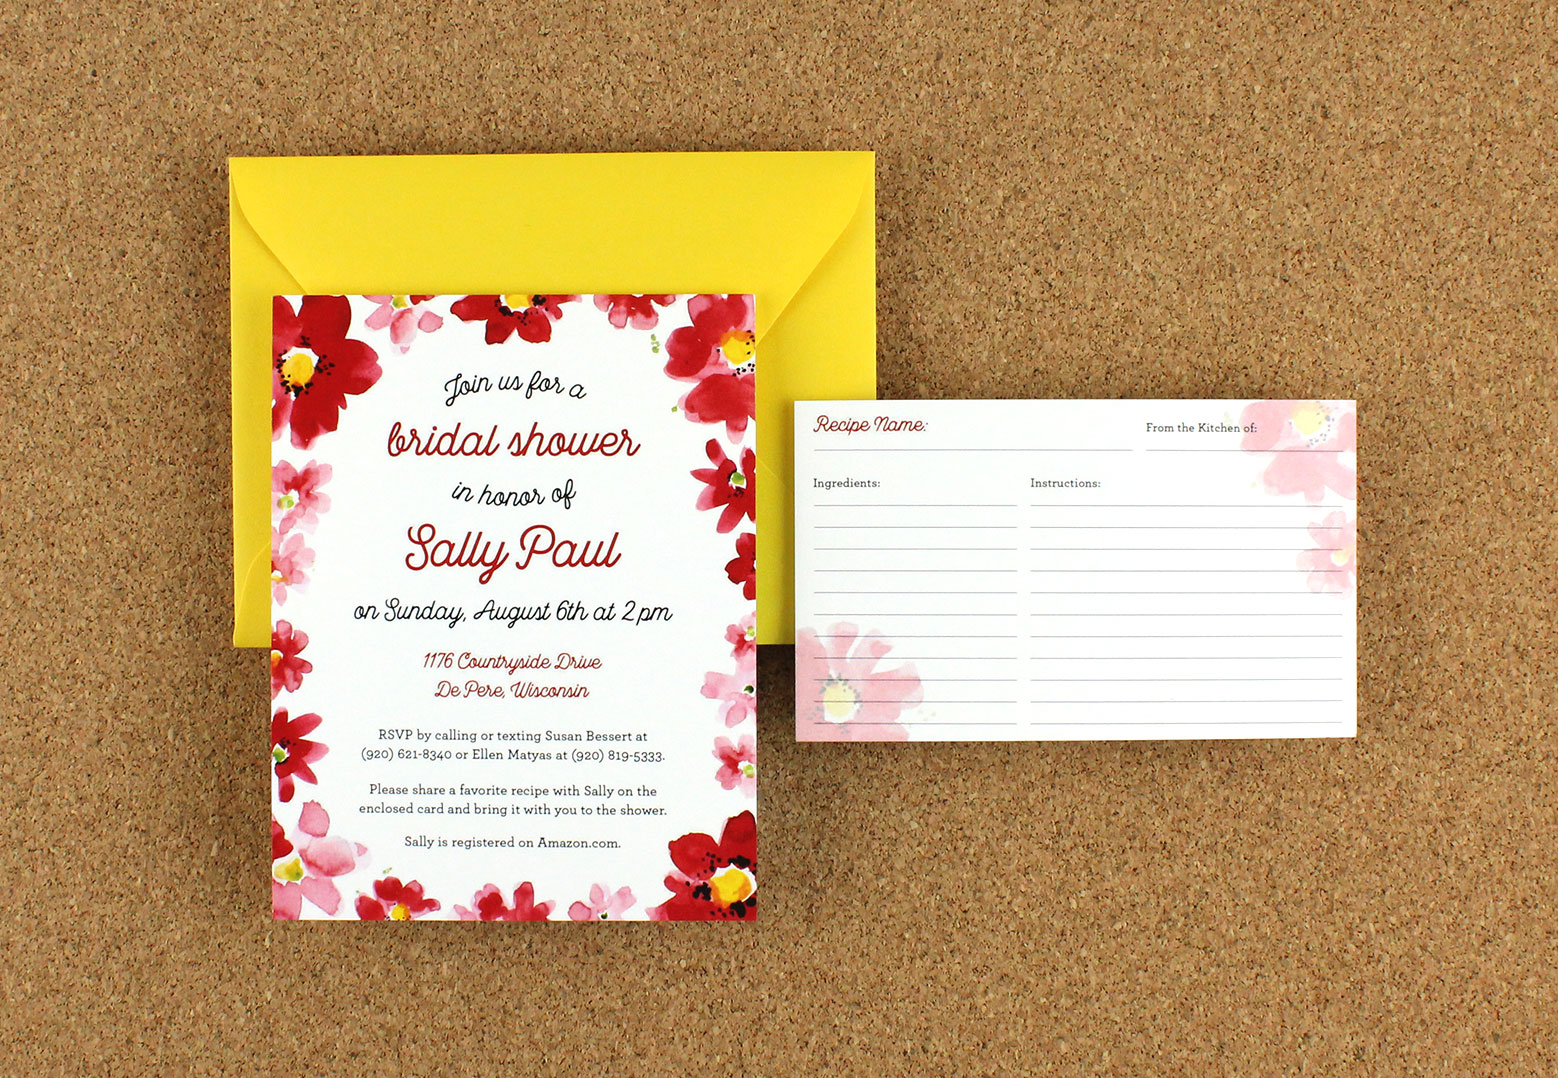 Sally's bridal shower invitations'